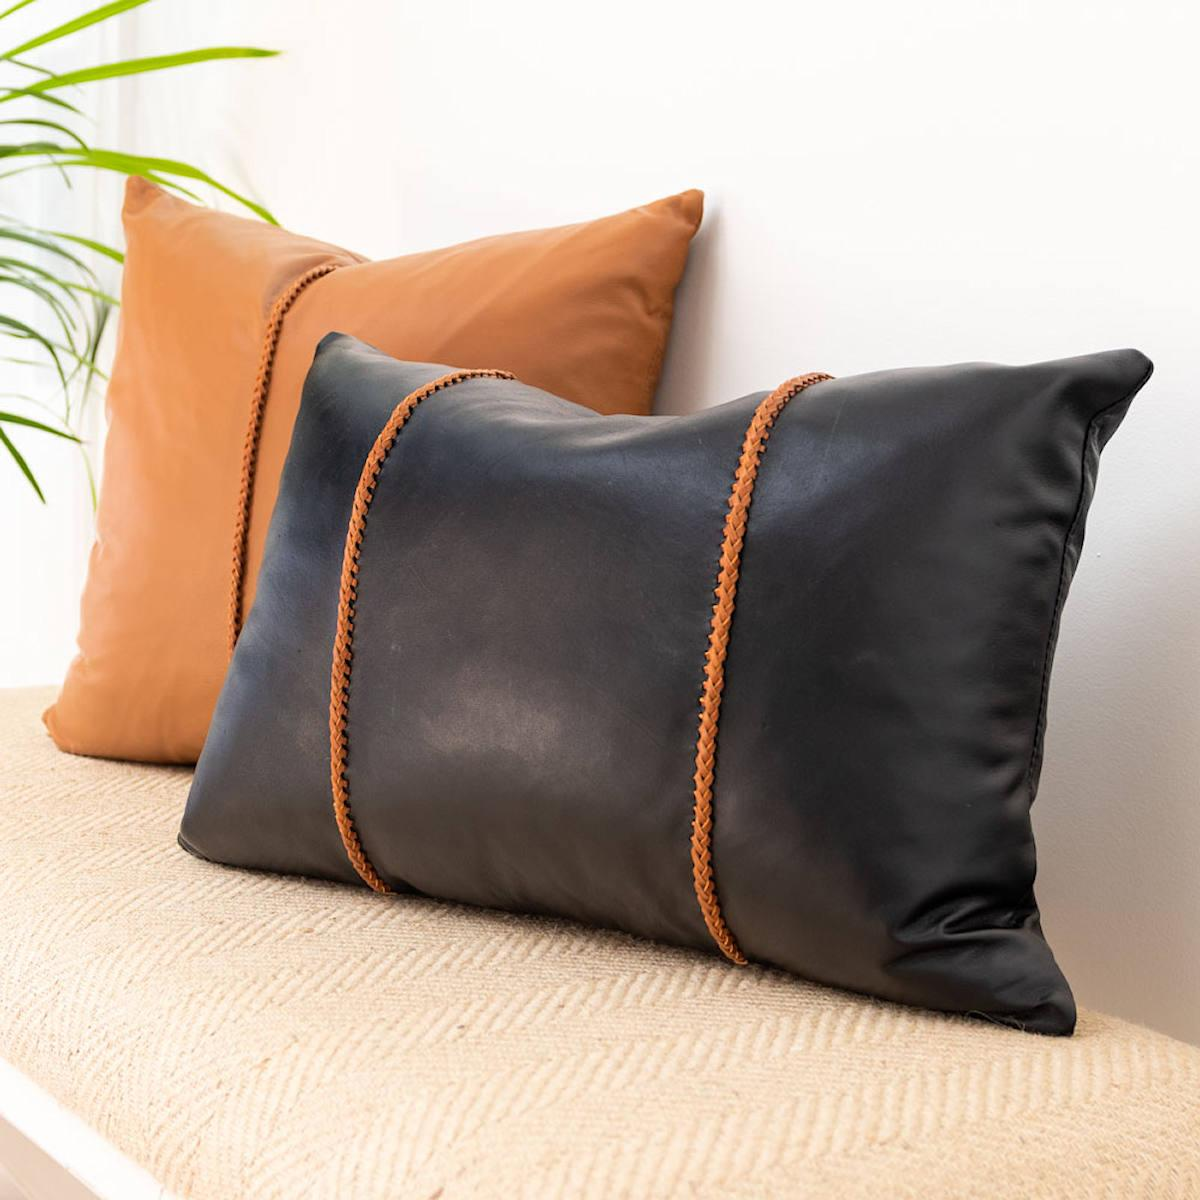 black leather pillow with tan leather cross stitch lumbar cushion